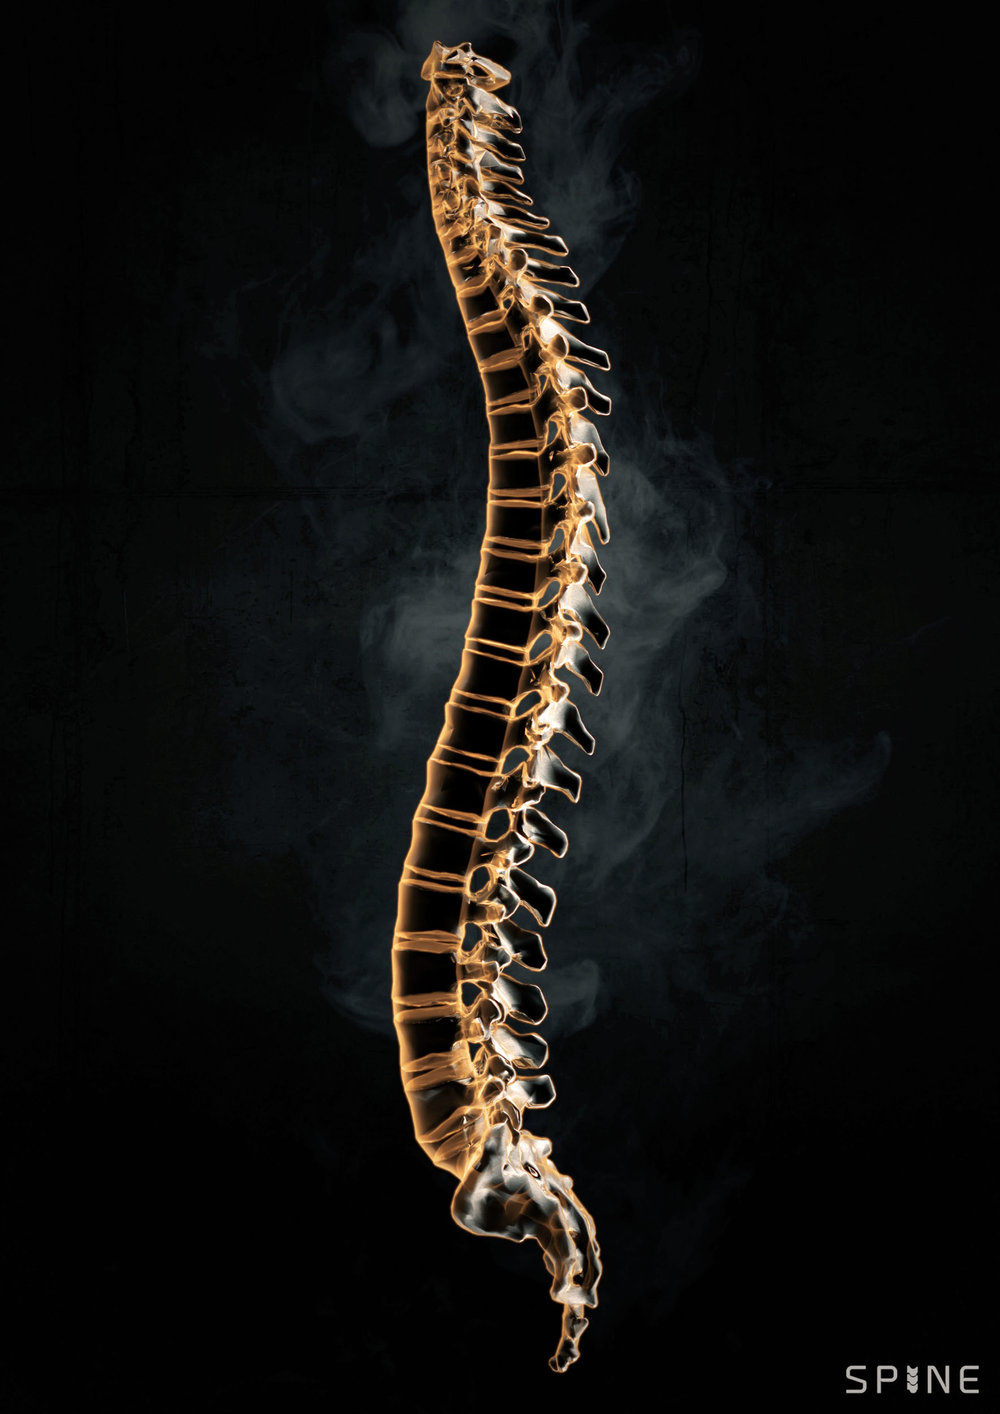 BOOM_CGI_MEDICAL_spine-render.jpg